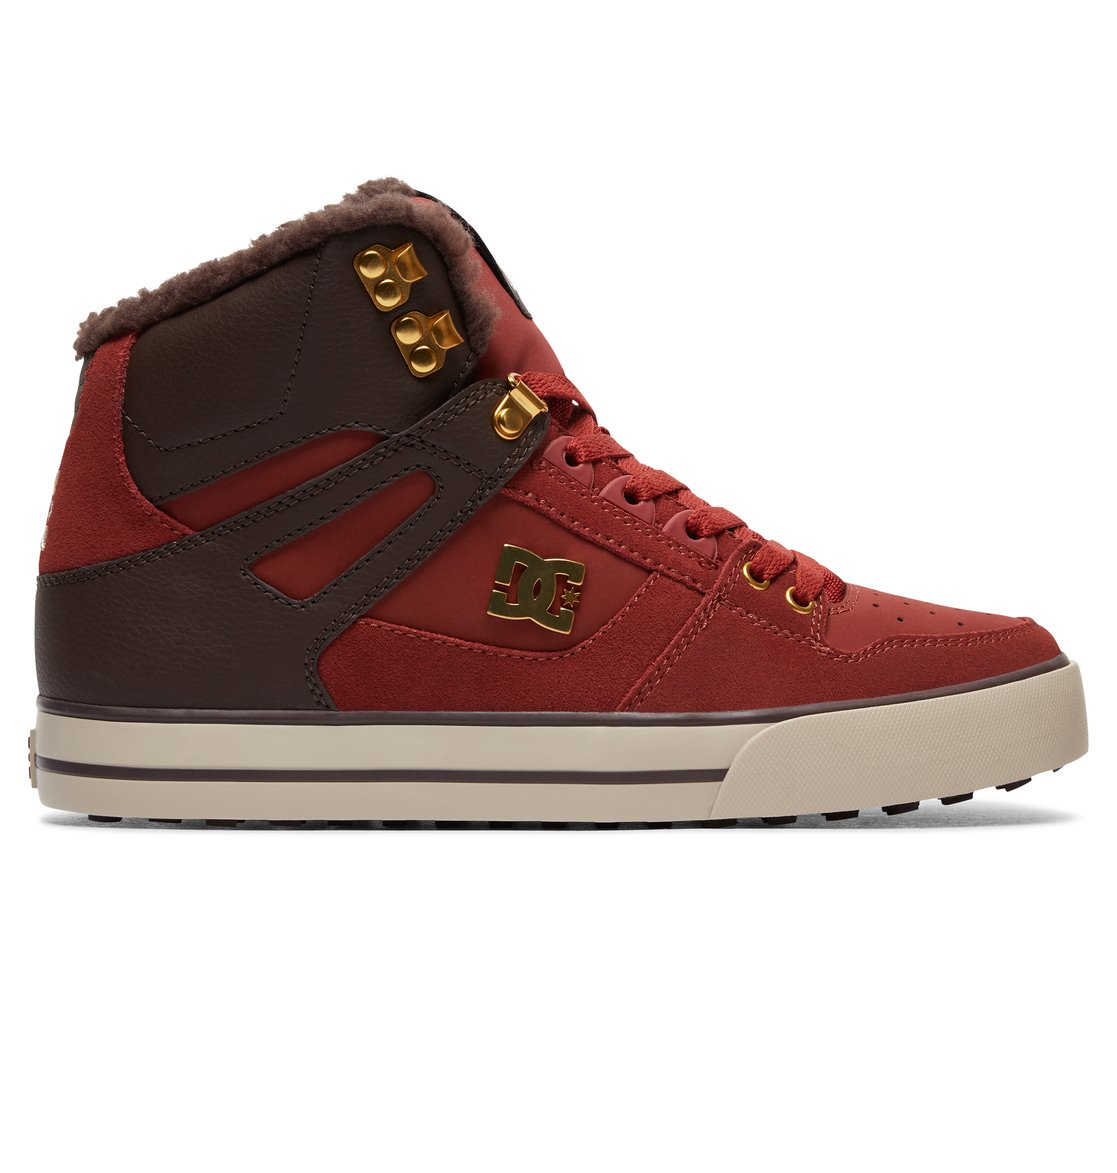 Pure High WC WNT - Chaussures montantes - Marron - DC Shoes PkUbCsId